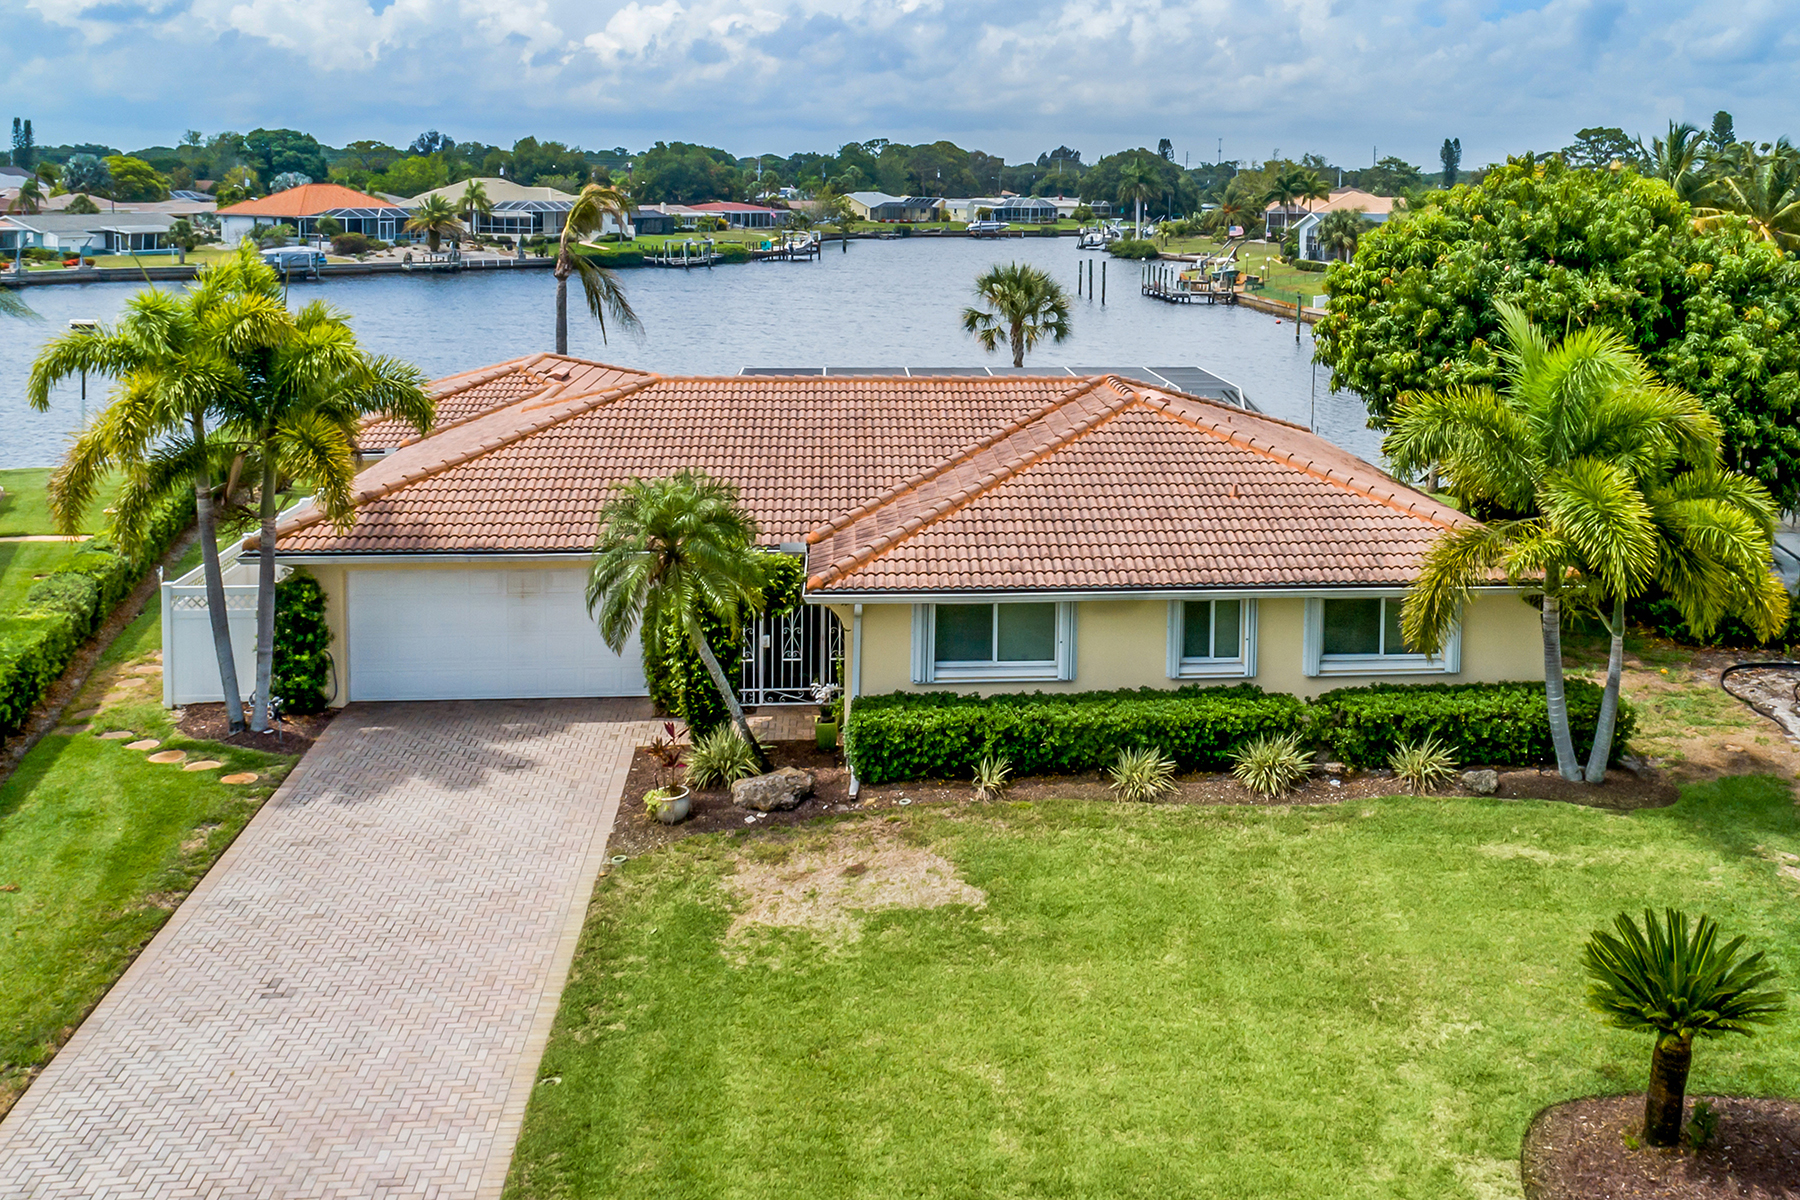 single family homes for Active at ENGLEWOOD ISLES 32 Windsor Dr Englewood, Florida 34223 United States